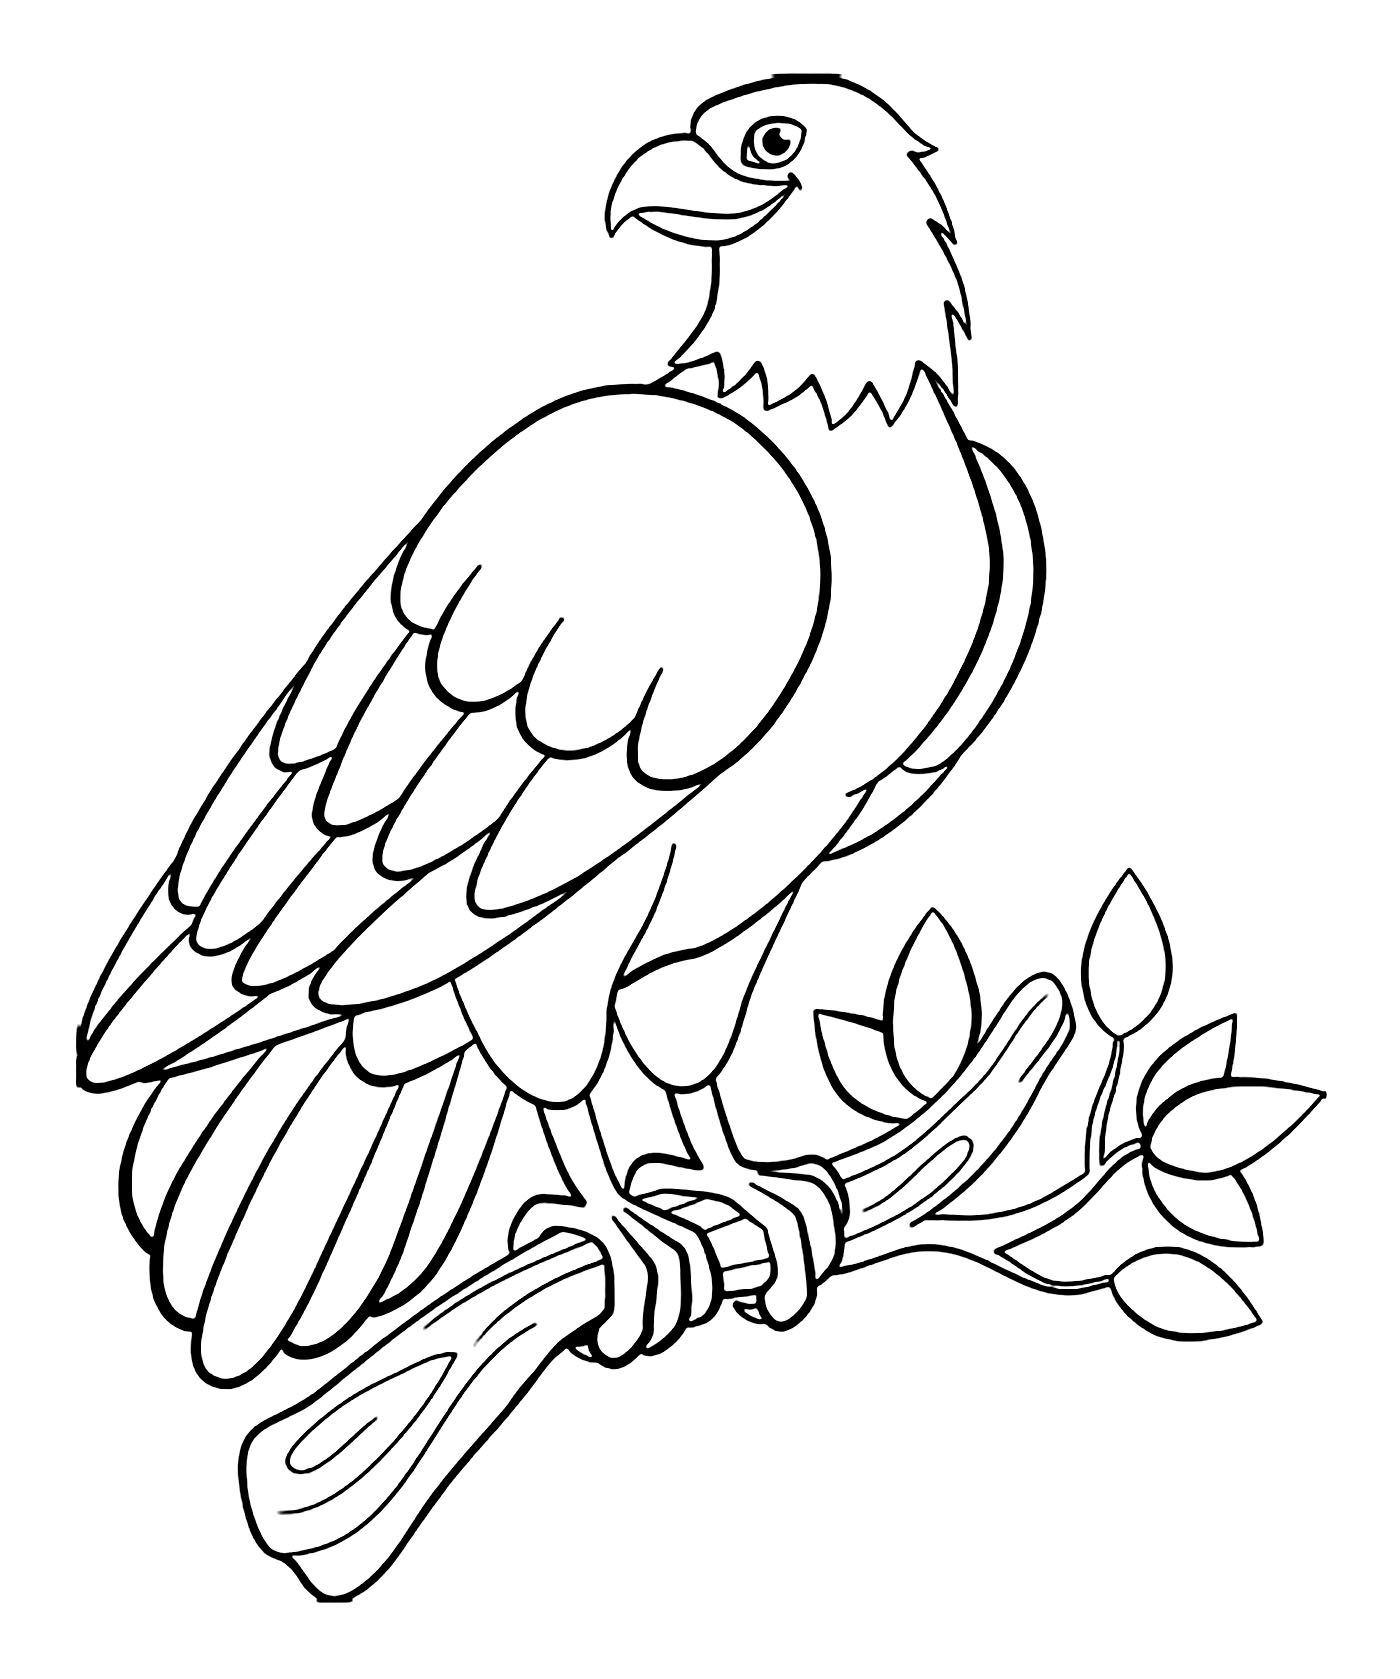 bird coloring images birds free to color for children birds kids coloring pages images bird coloring